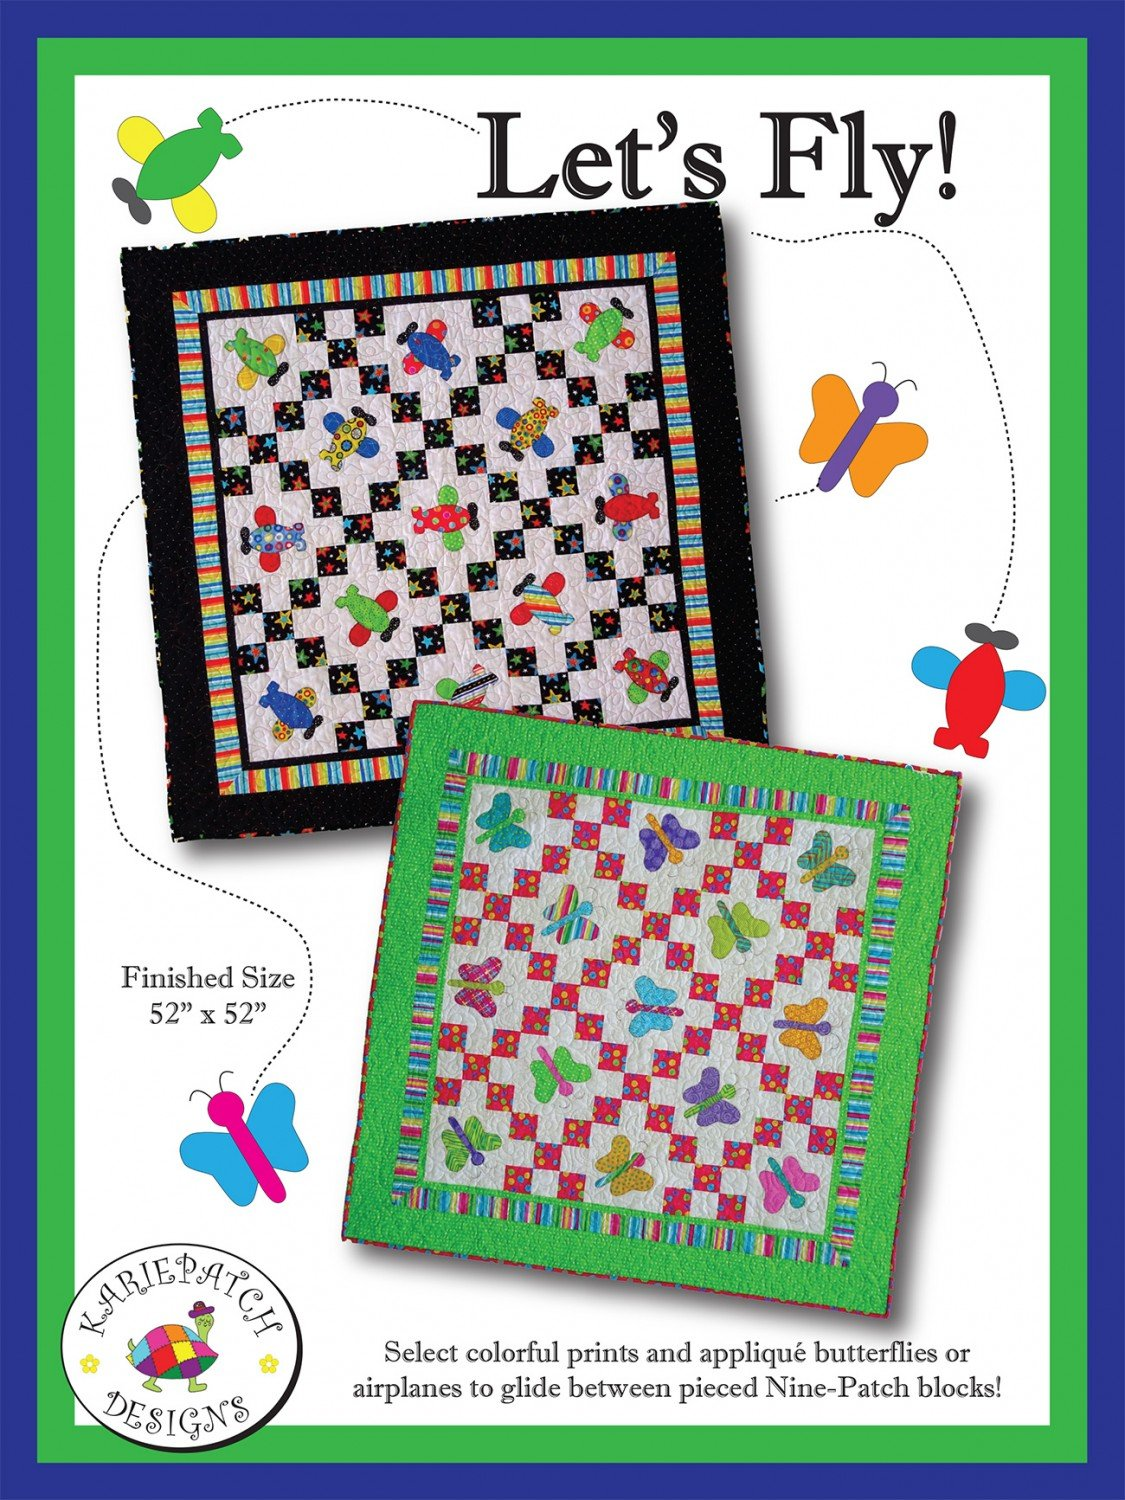 Karie Patch Designs - Let's Fly